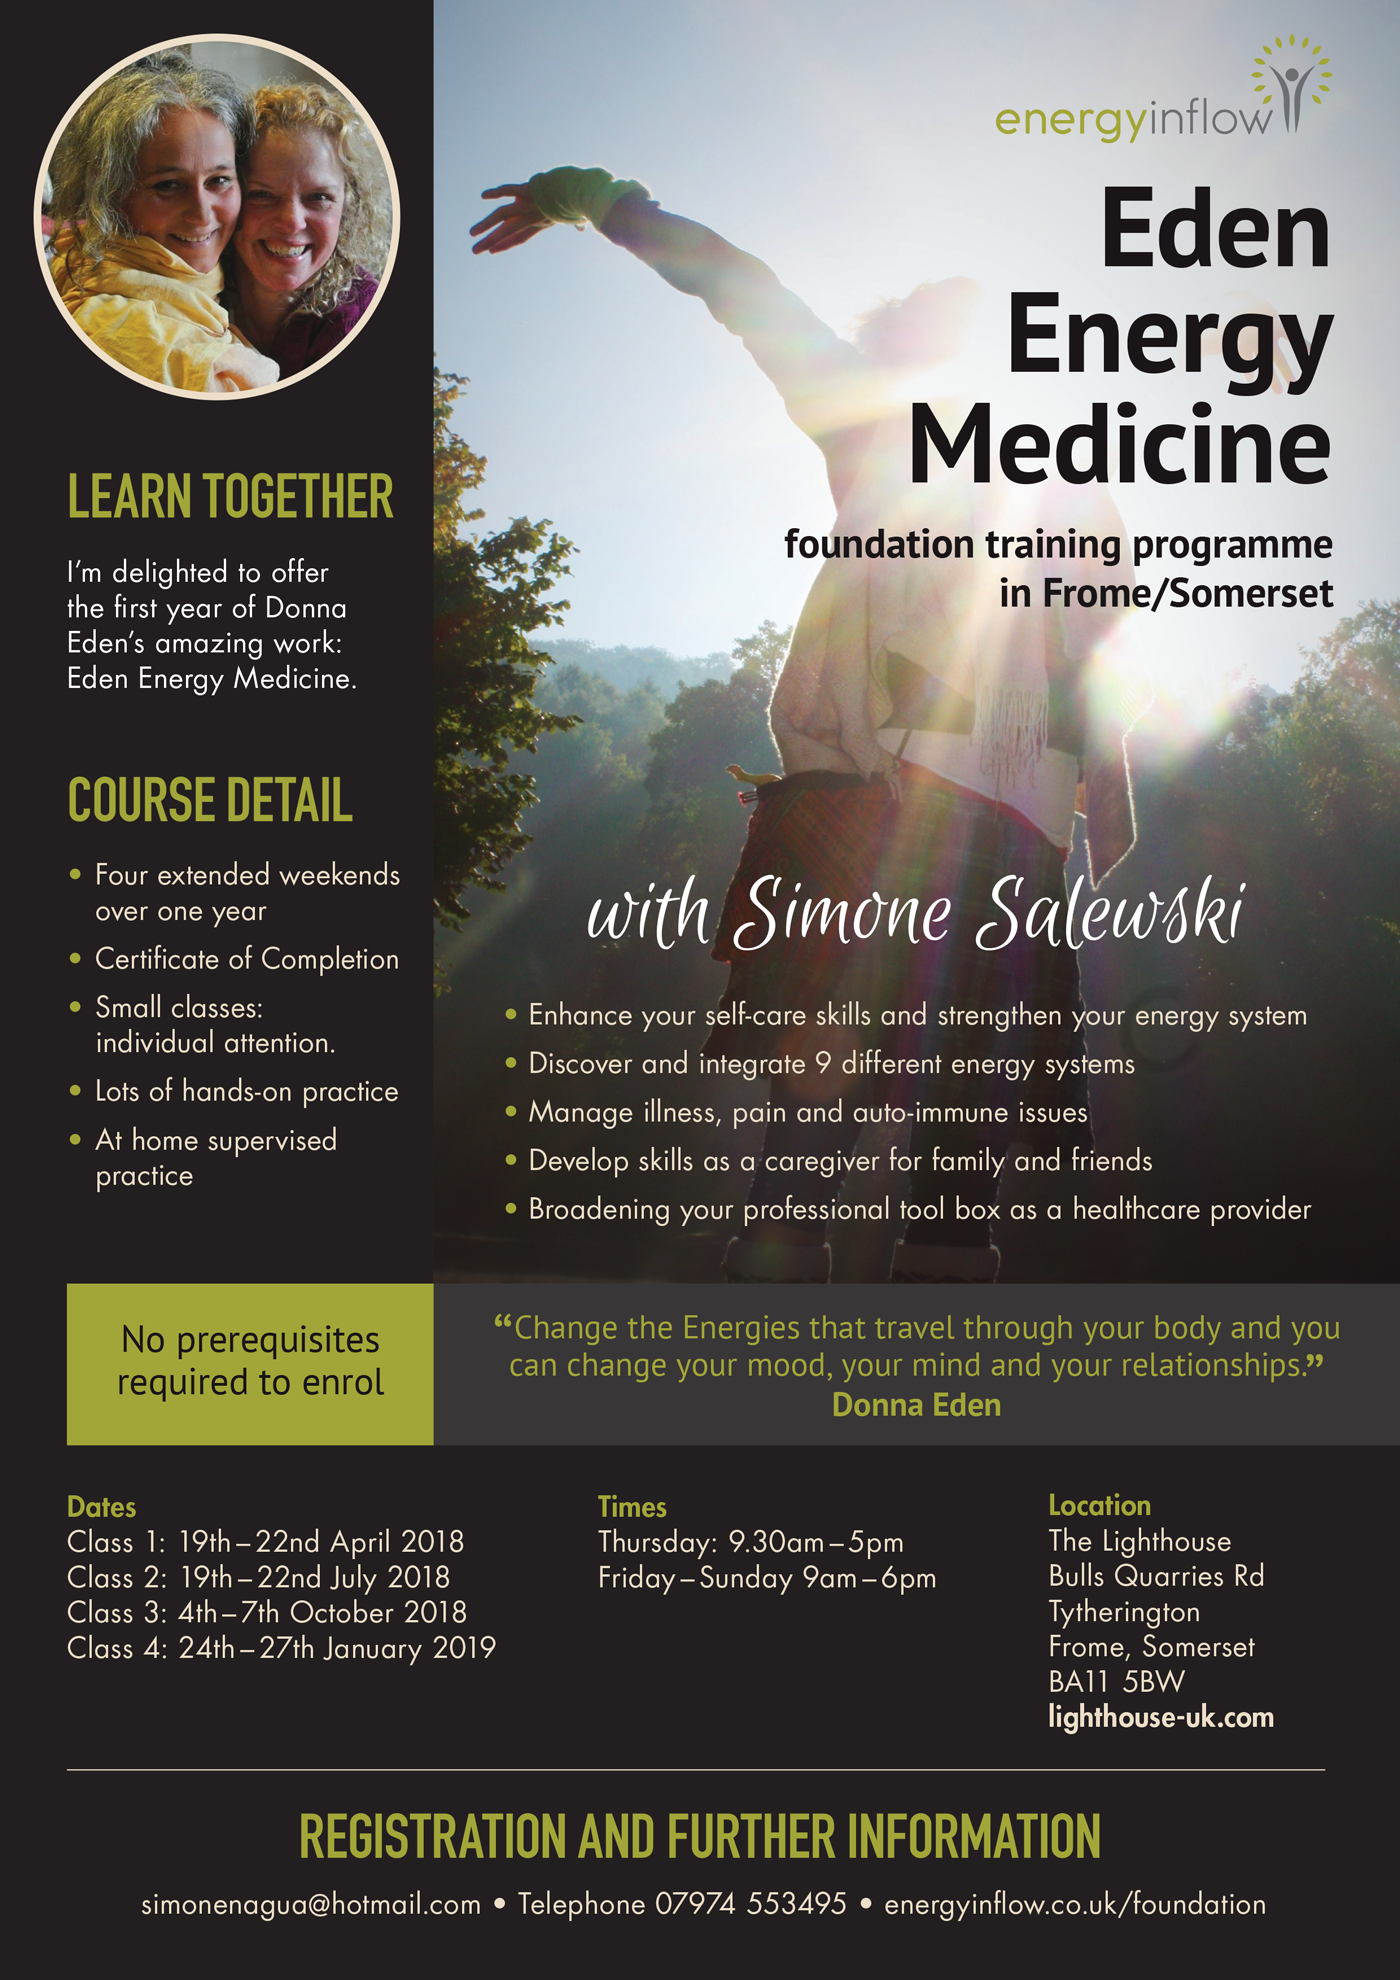 Eden Energy Medicine - Foundation Training Programme